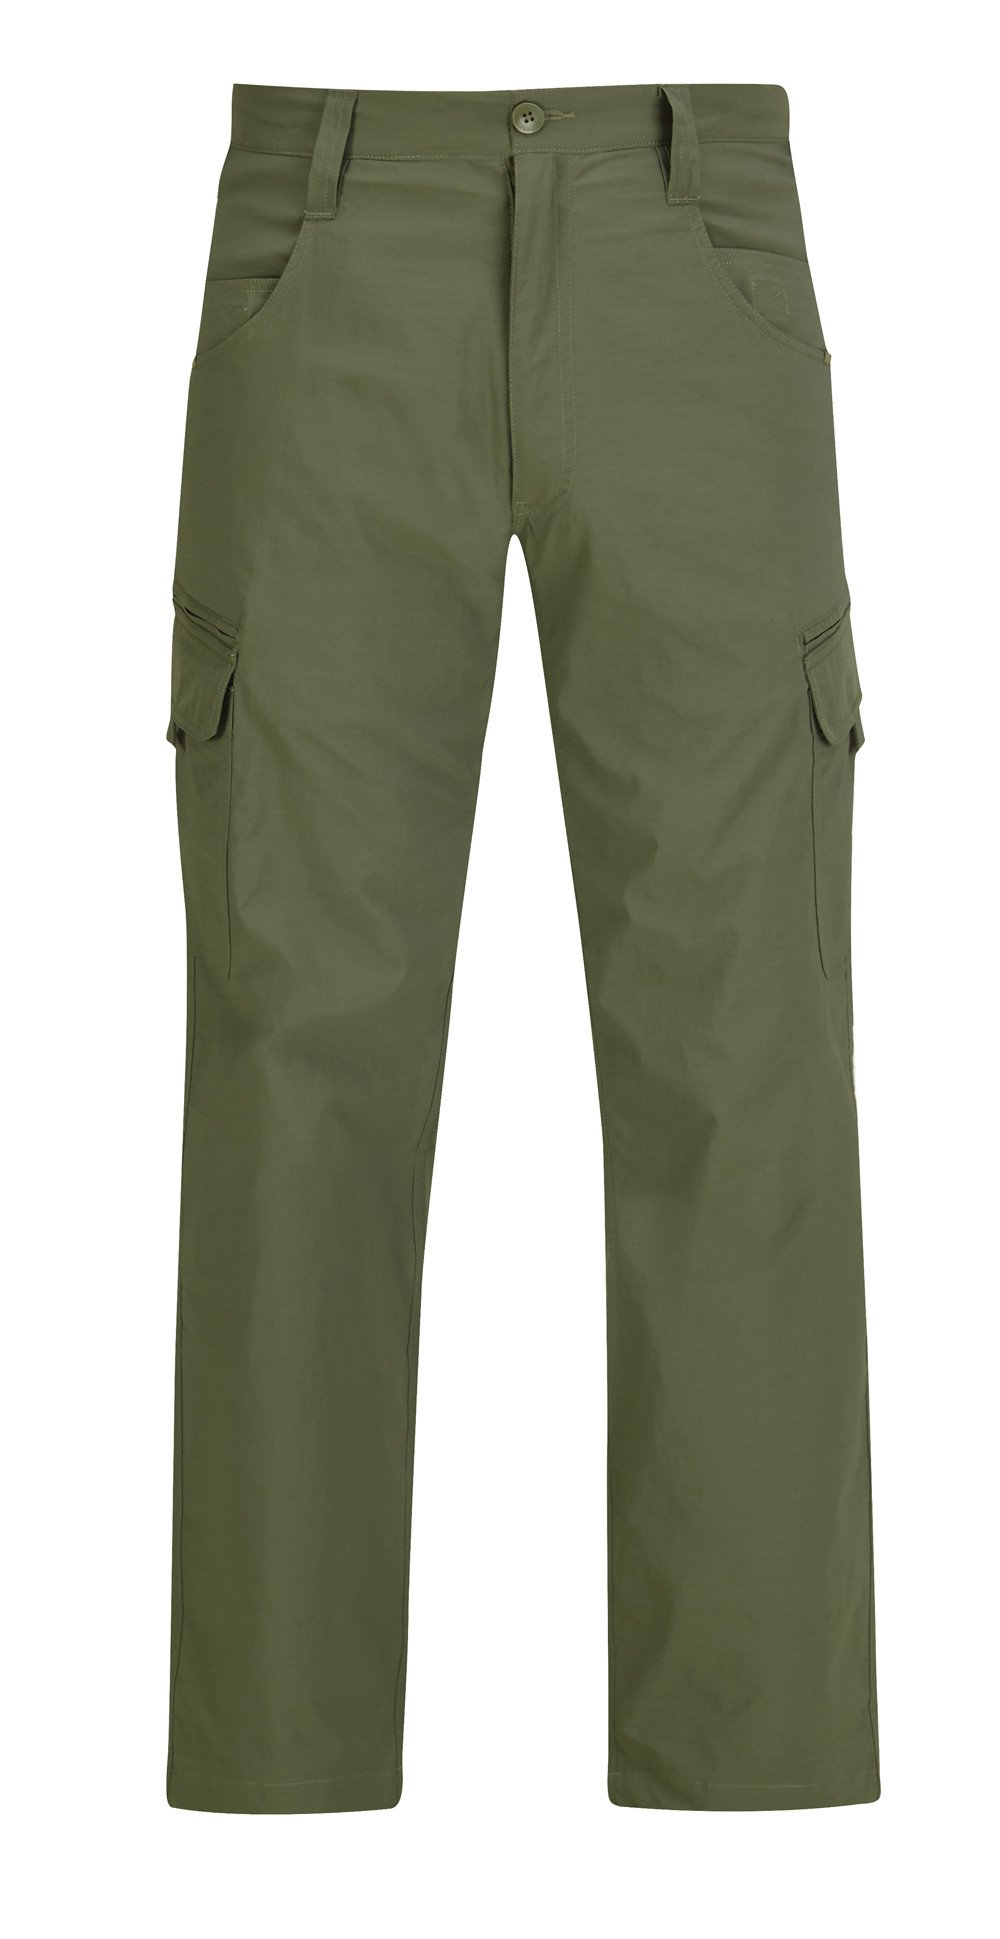 Propper Summerweight Tactical Pant - Olive - mtrsuperstore